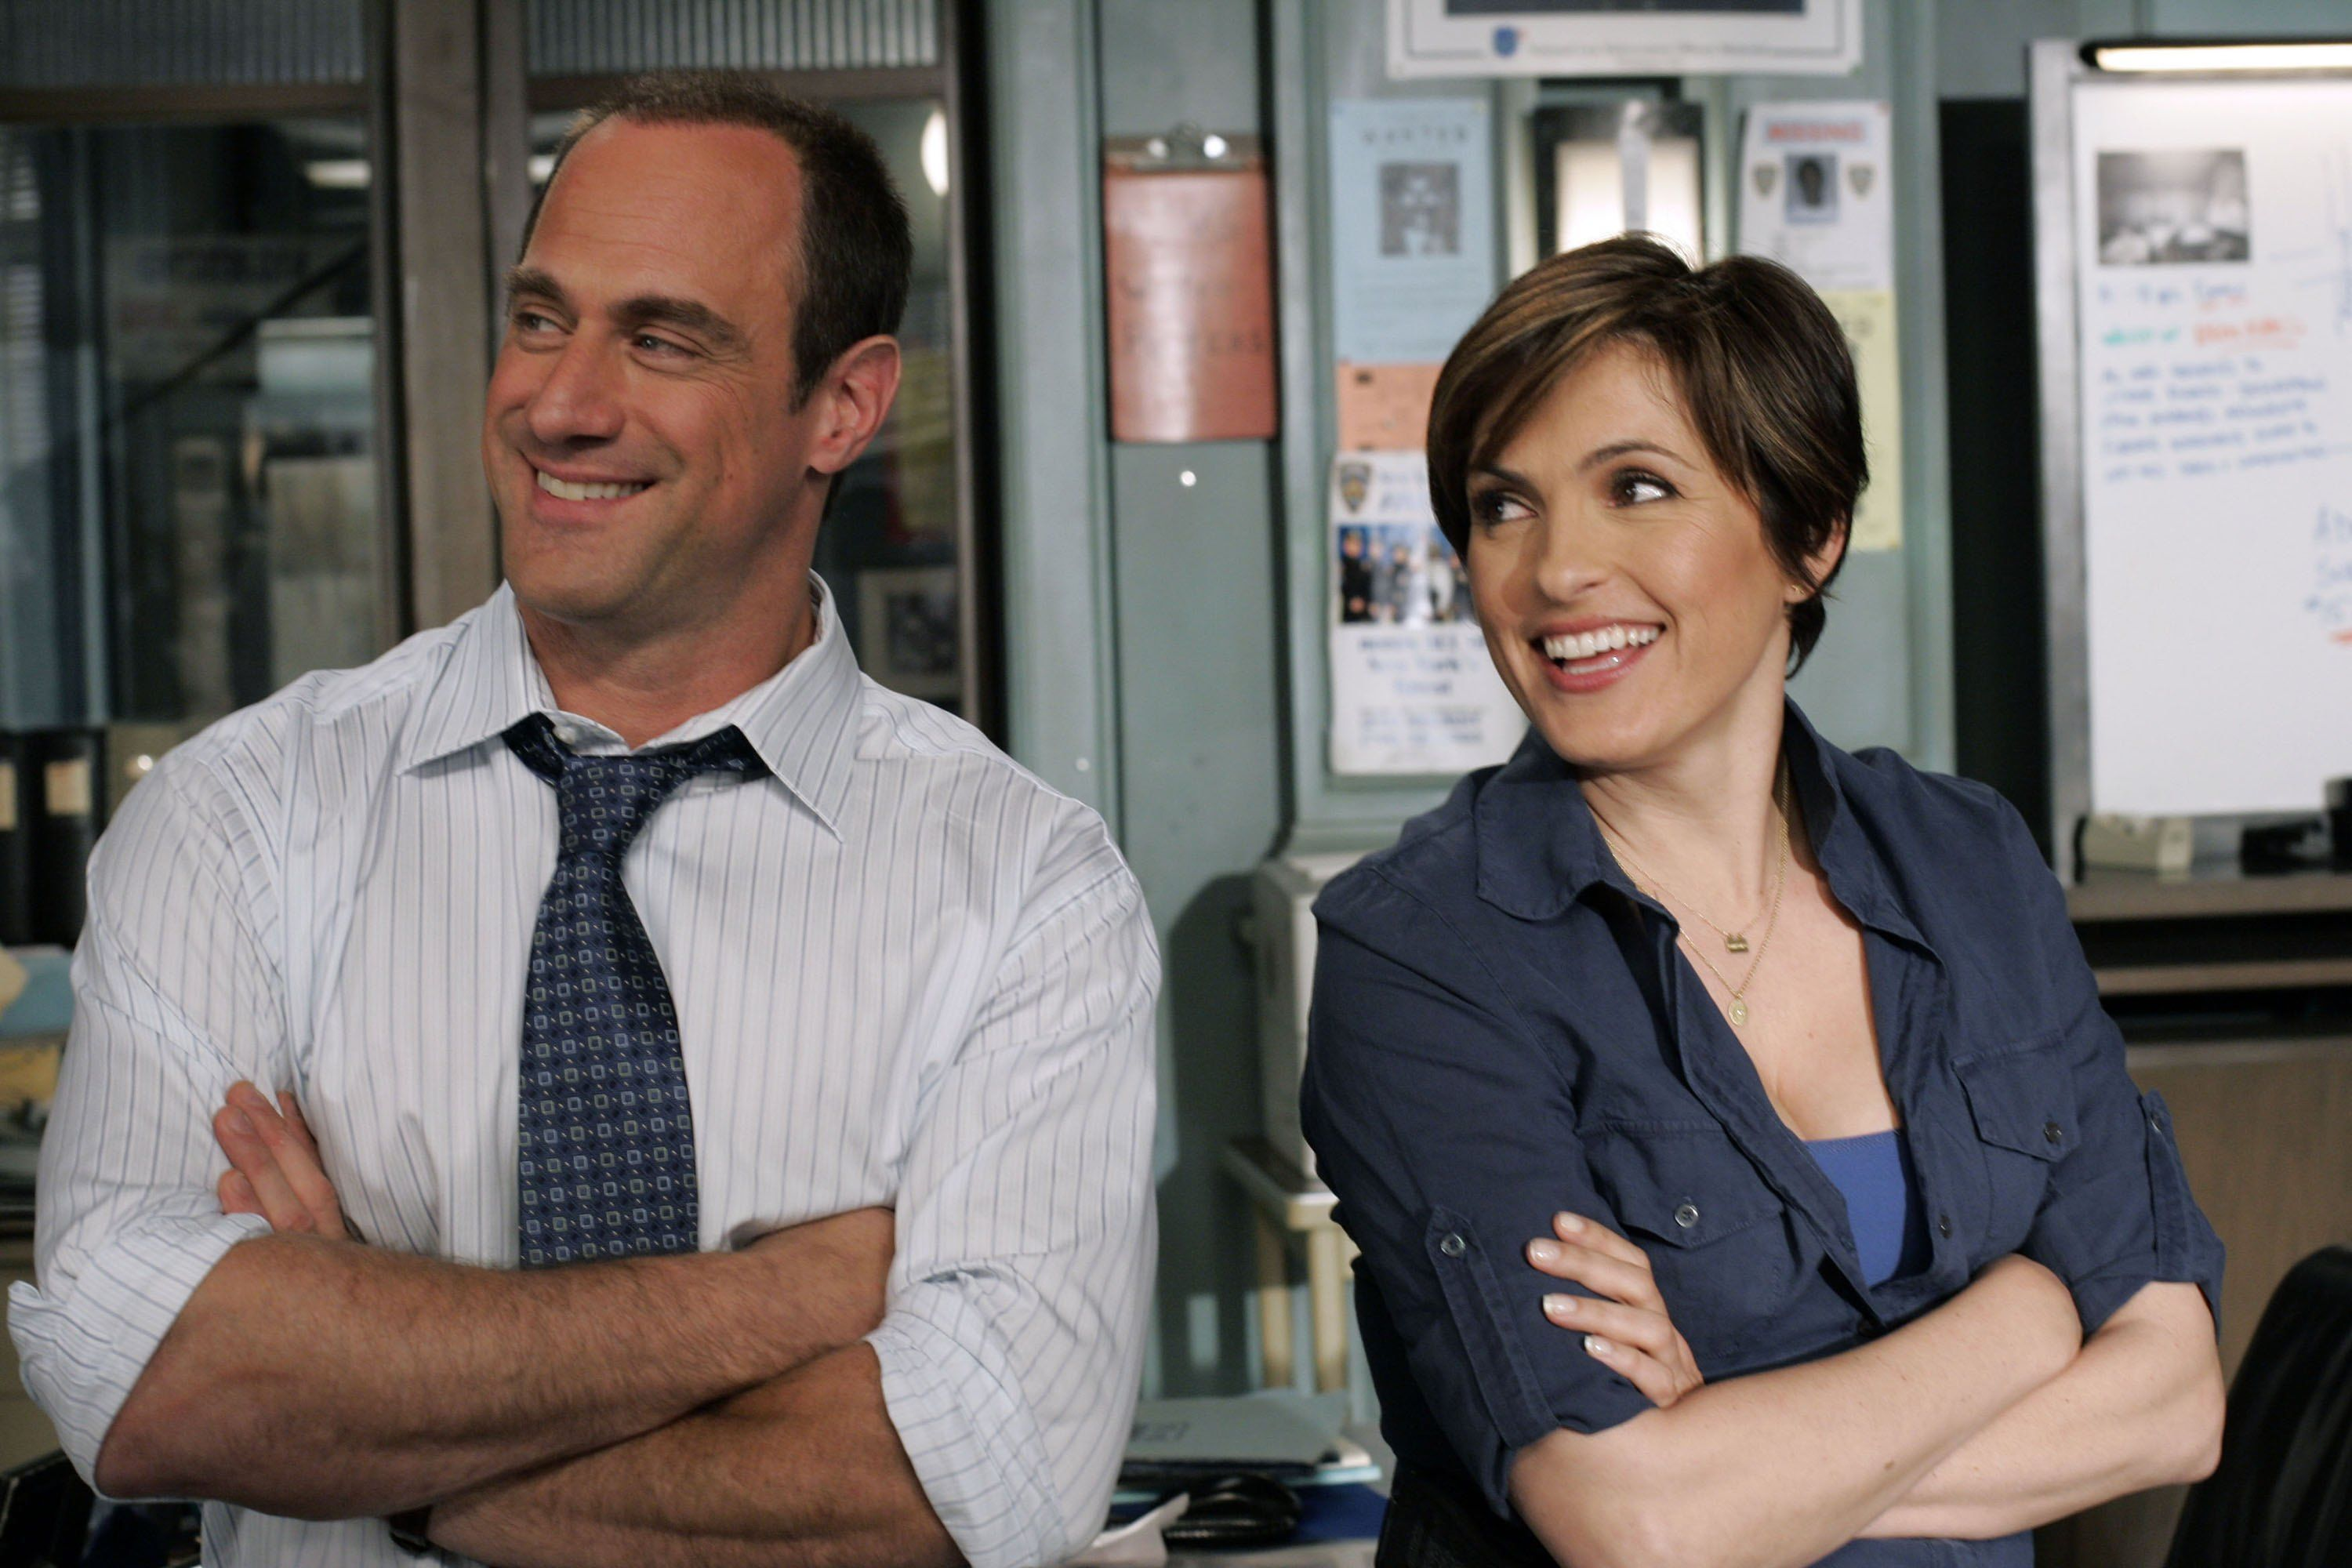 Do stabler and benson ever hook up